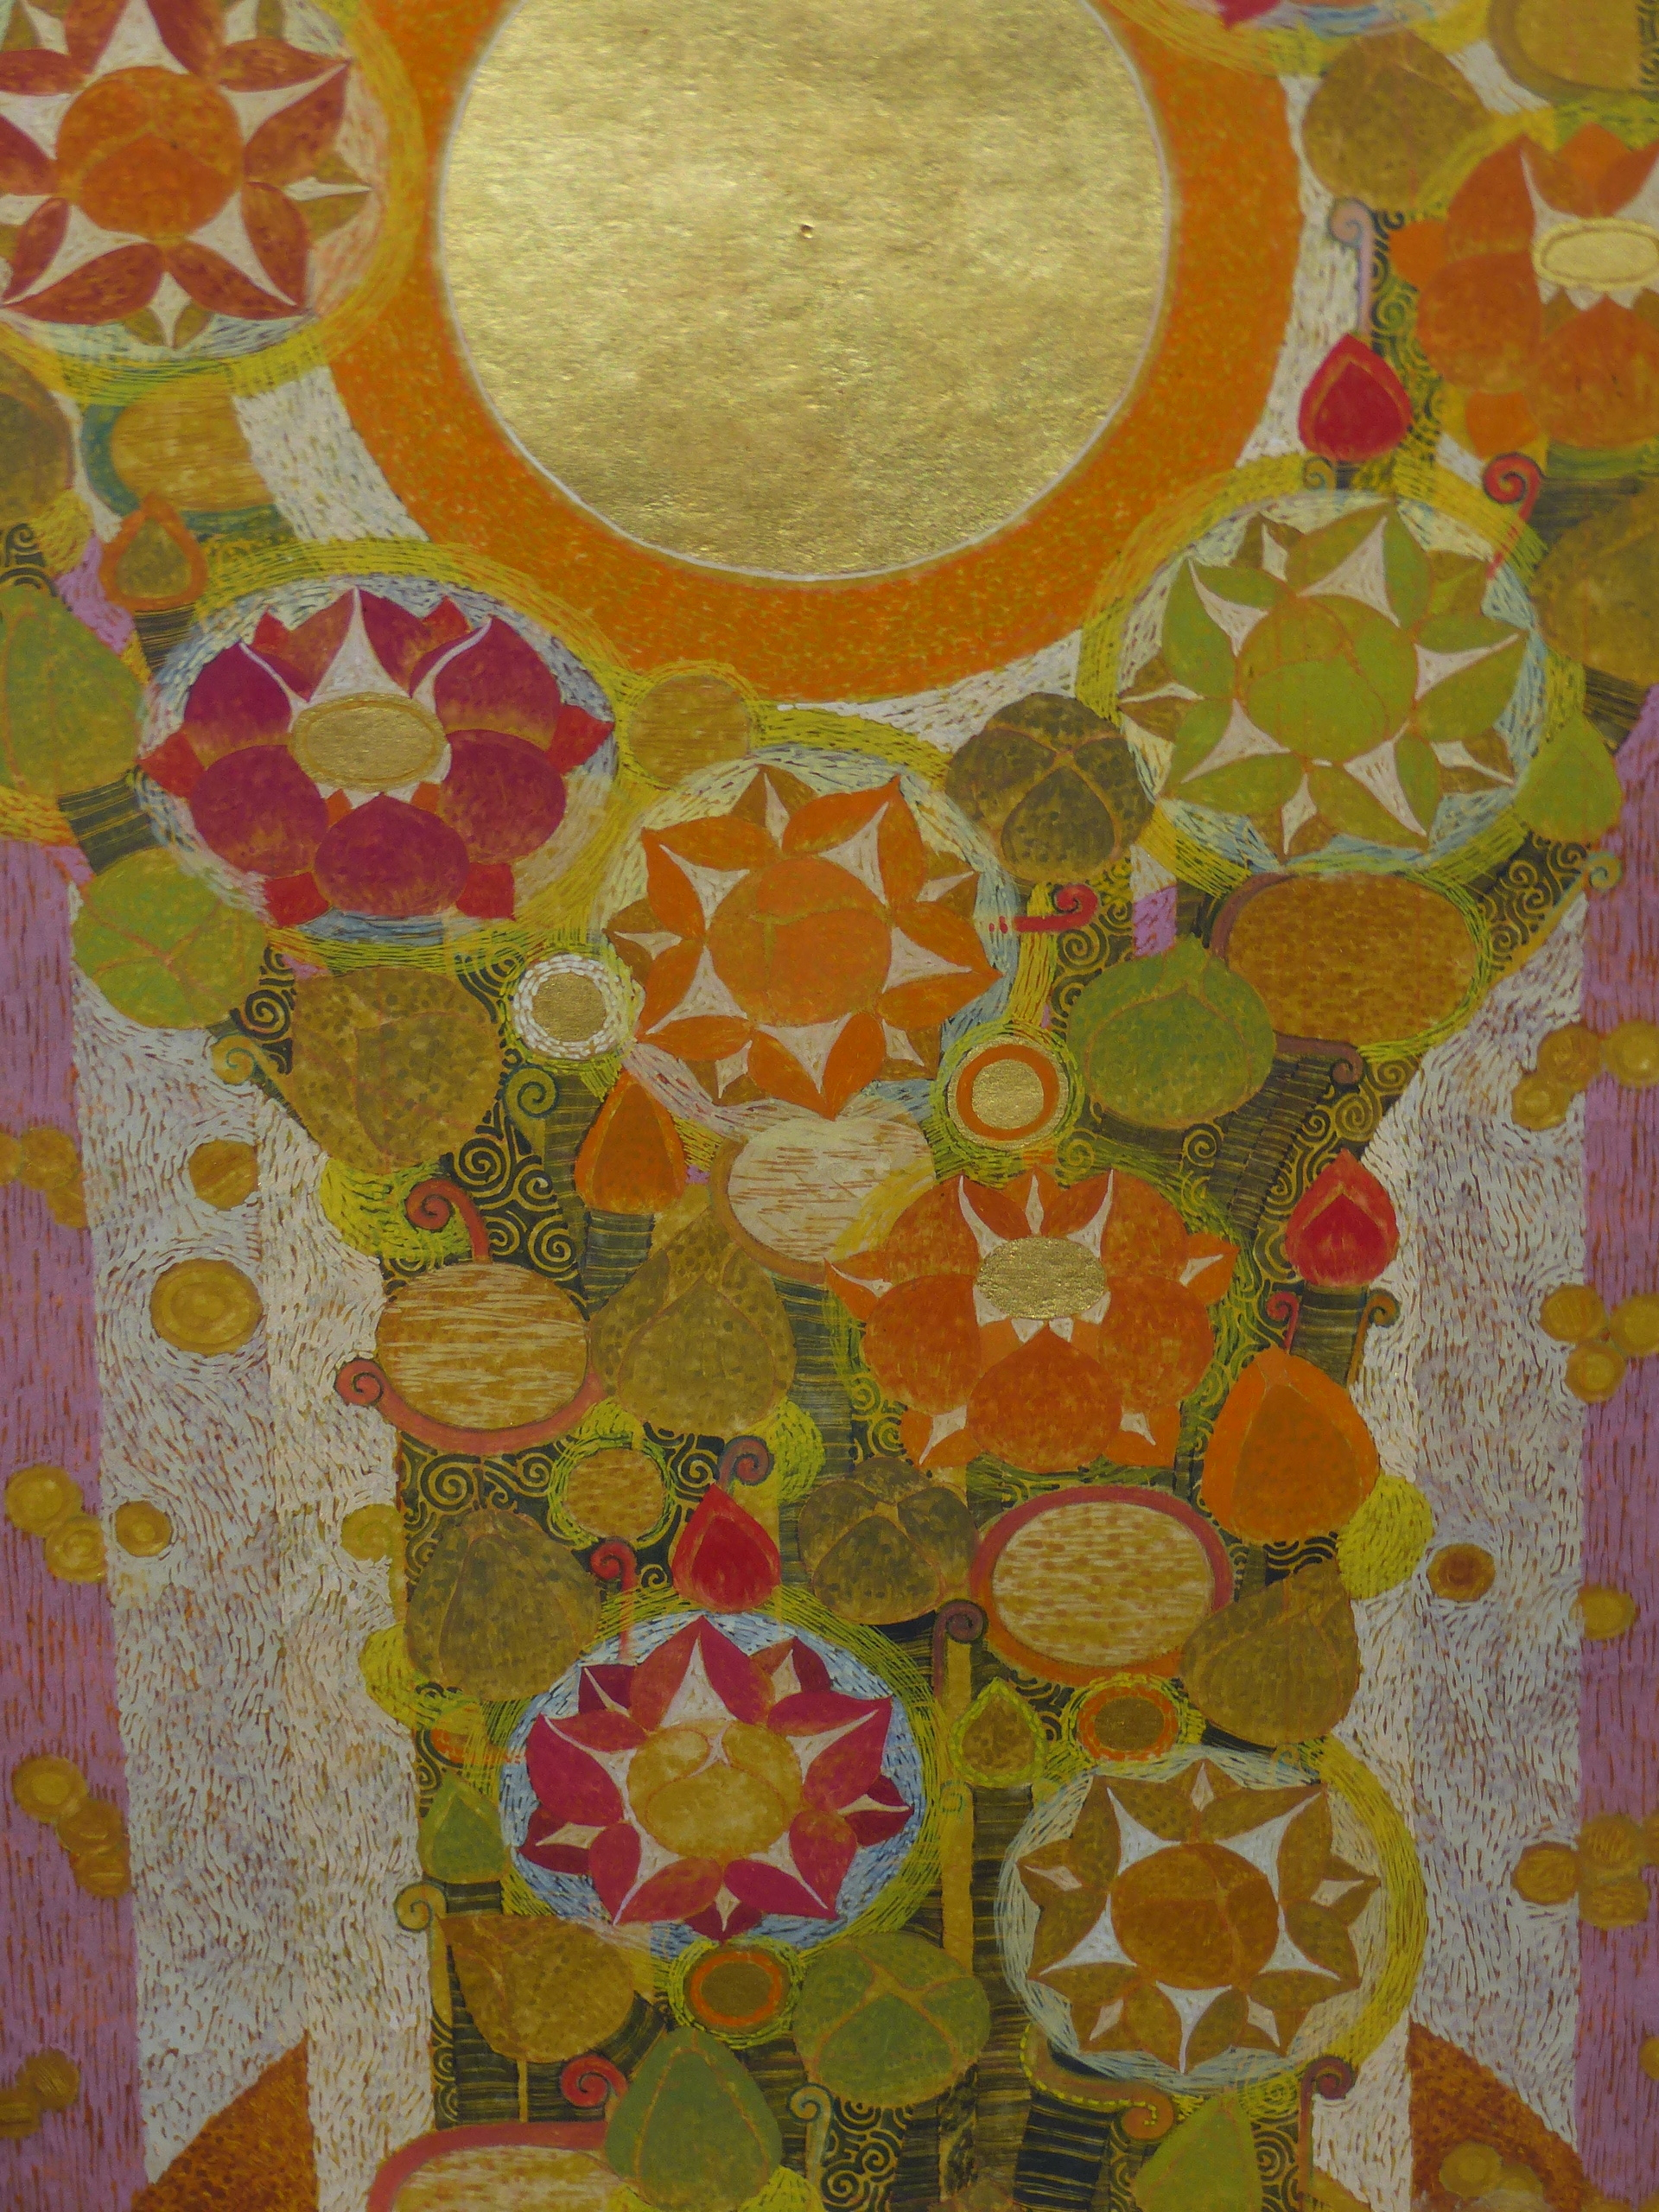 20th CENTURY EASTERN SCHOOL. A GEOMETRIC FLORAL ABSTRACTION WITH GILT HIGHLIGHTS AND WATERCOLOUR, - Image 3 of 8